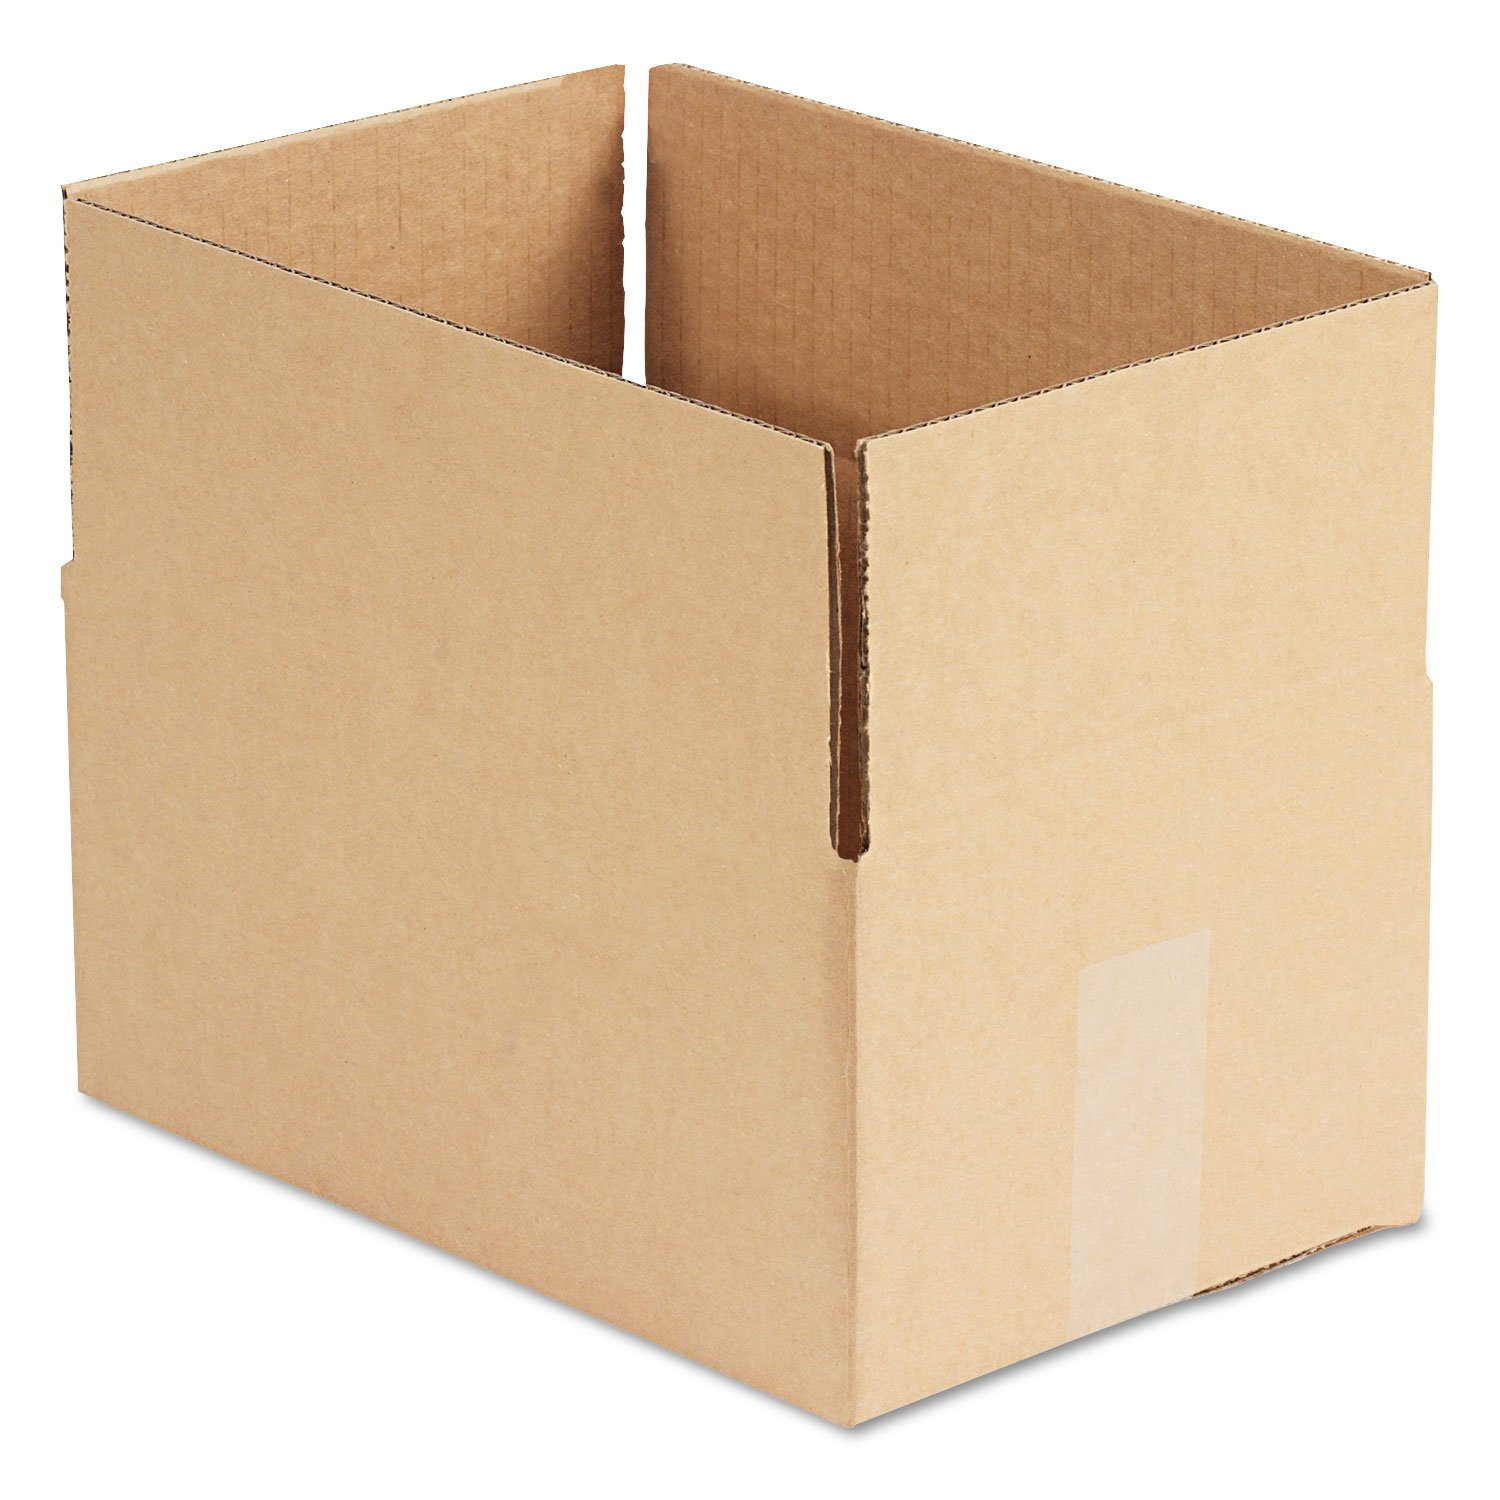 General Supply 1286 Brown Corrugated - Fixed-Depth Shipping Boxes, 12l x 8w x 6h, 25/Bundle